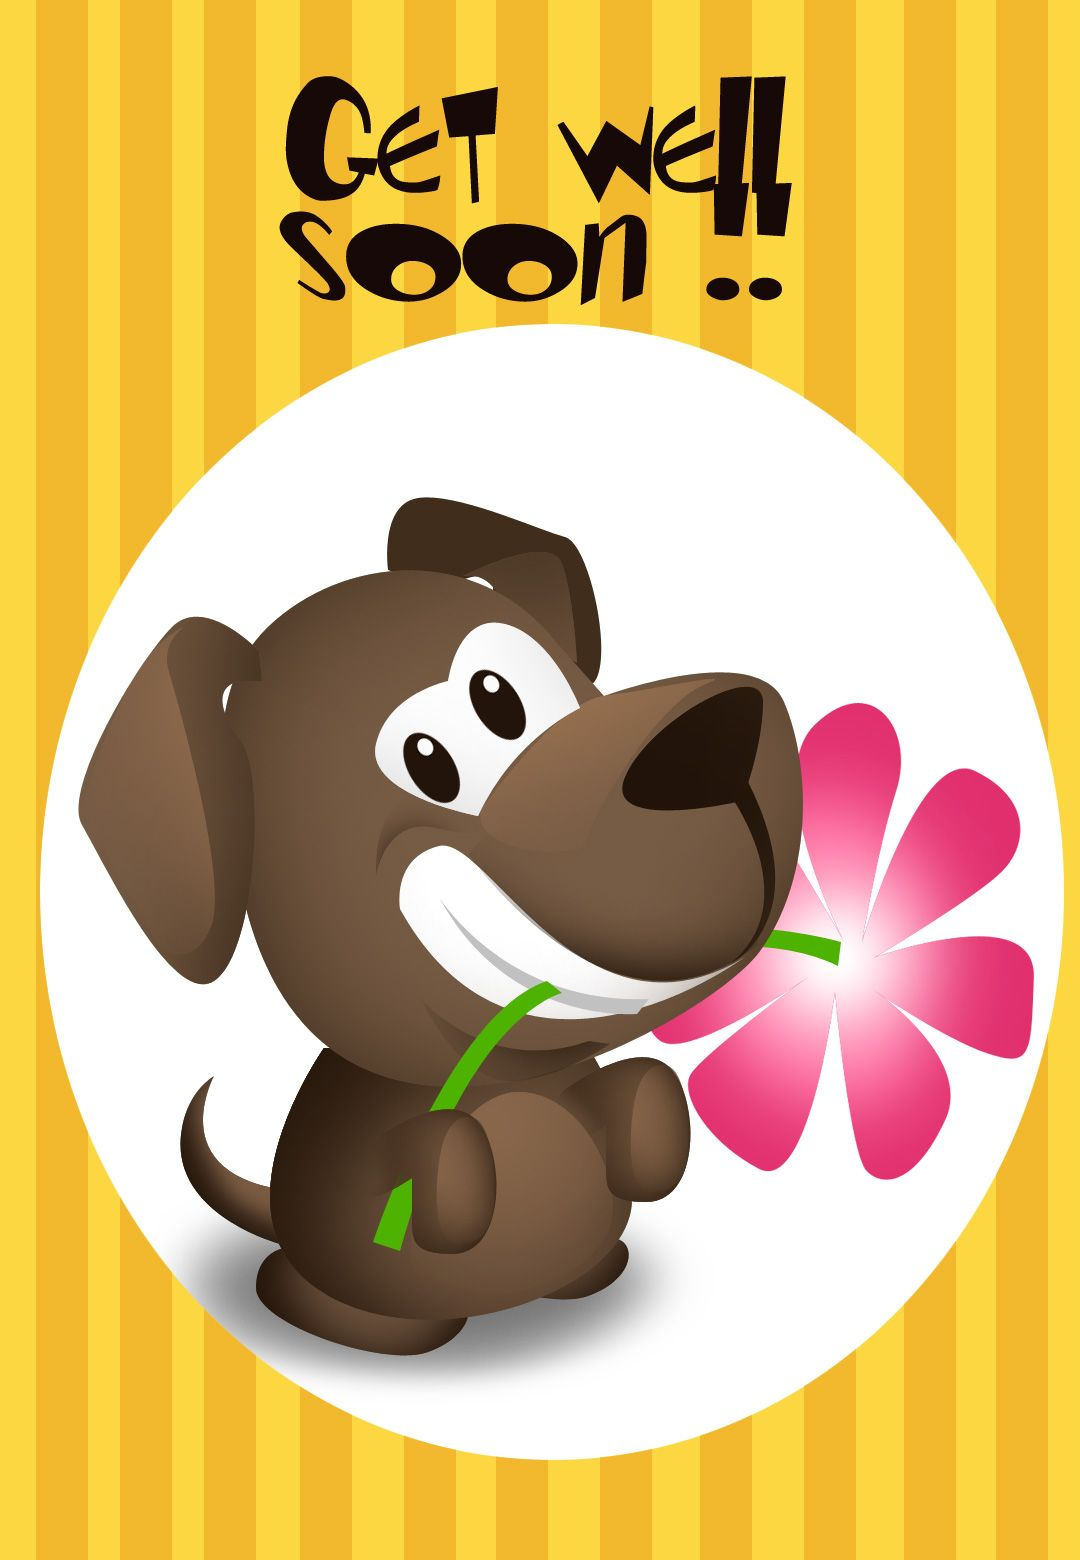 Feel Better Soon Quotes Get Well Soon Puppy Greeting Card  Get Well. Pinterest